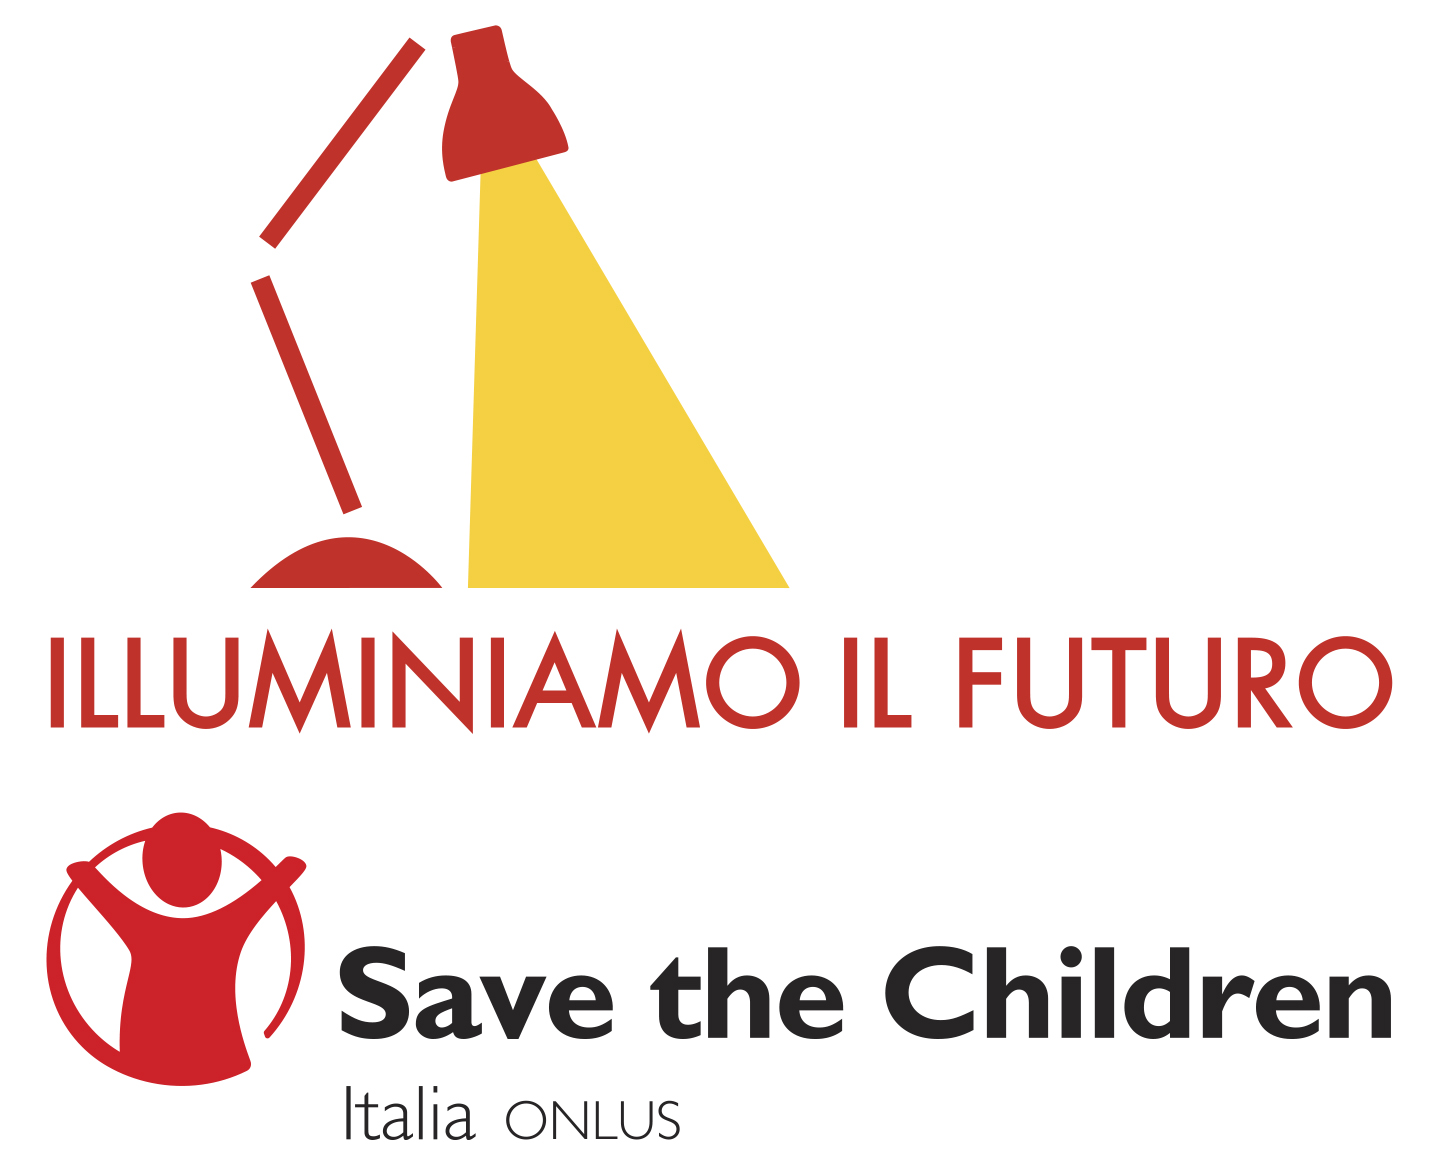 Marigliano, RaggioSunBoys Onlus con  Save the Children in Illuminiamo il Futuro